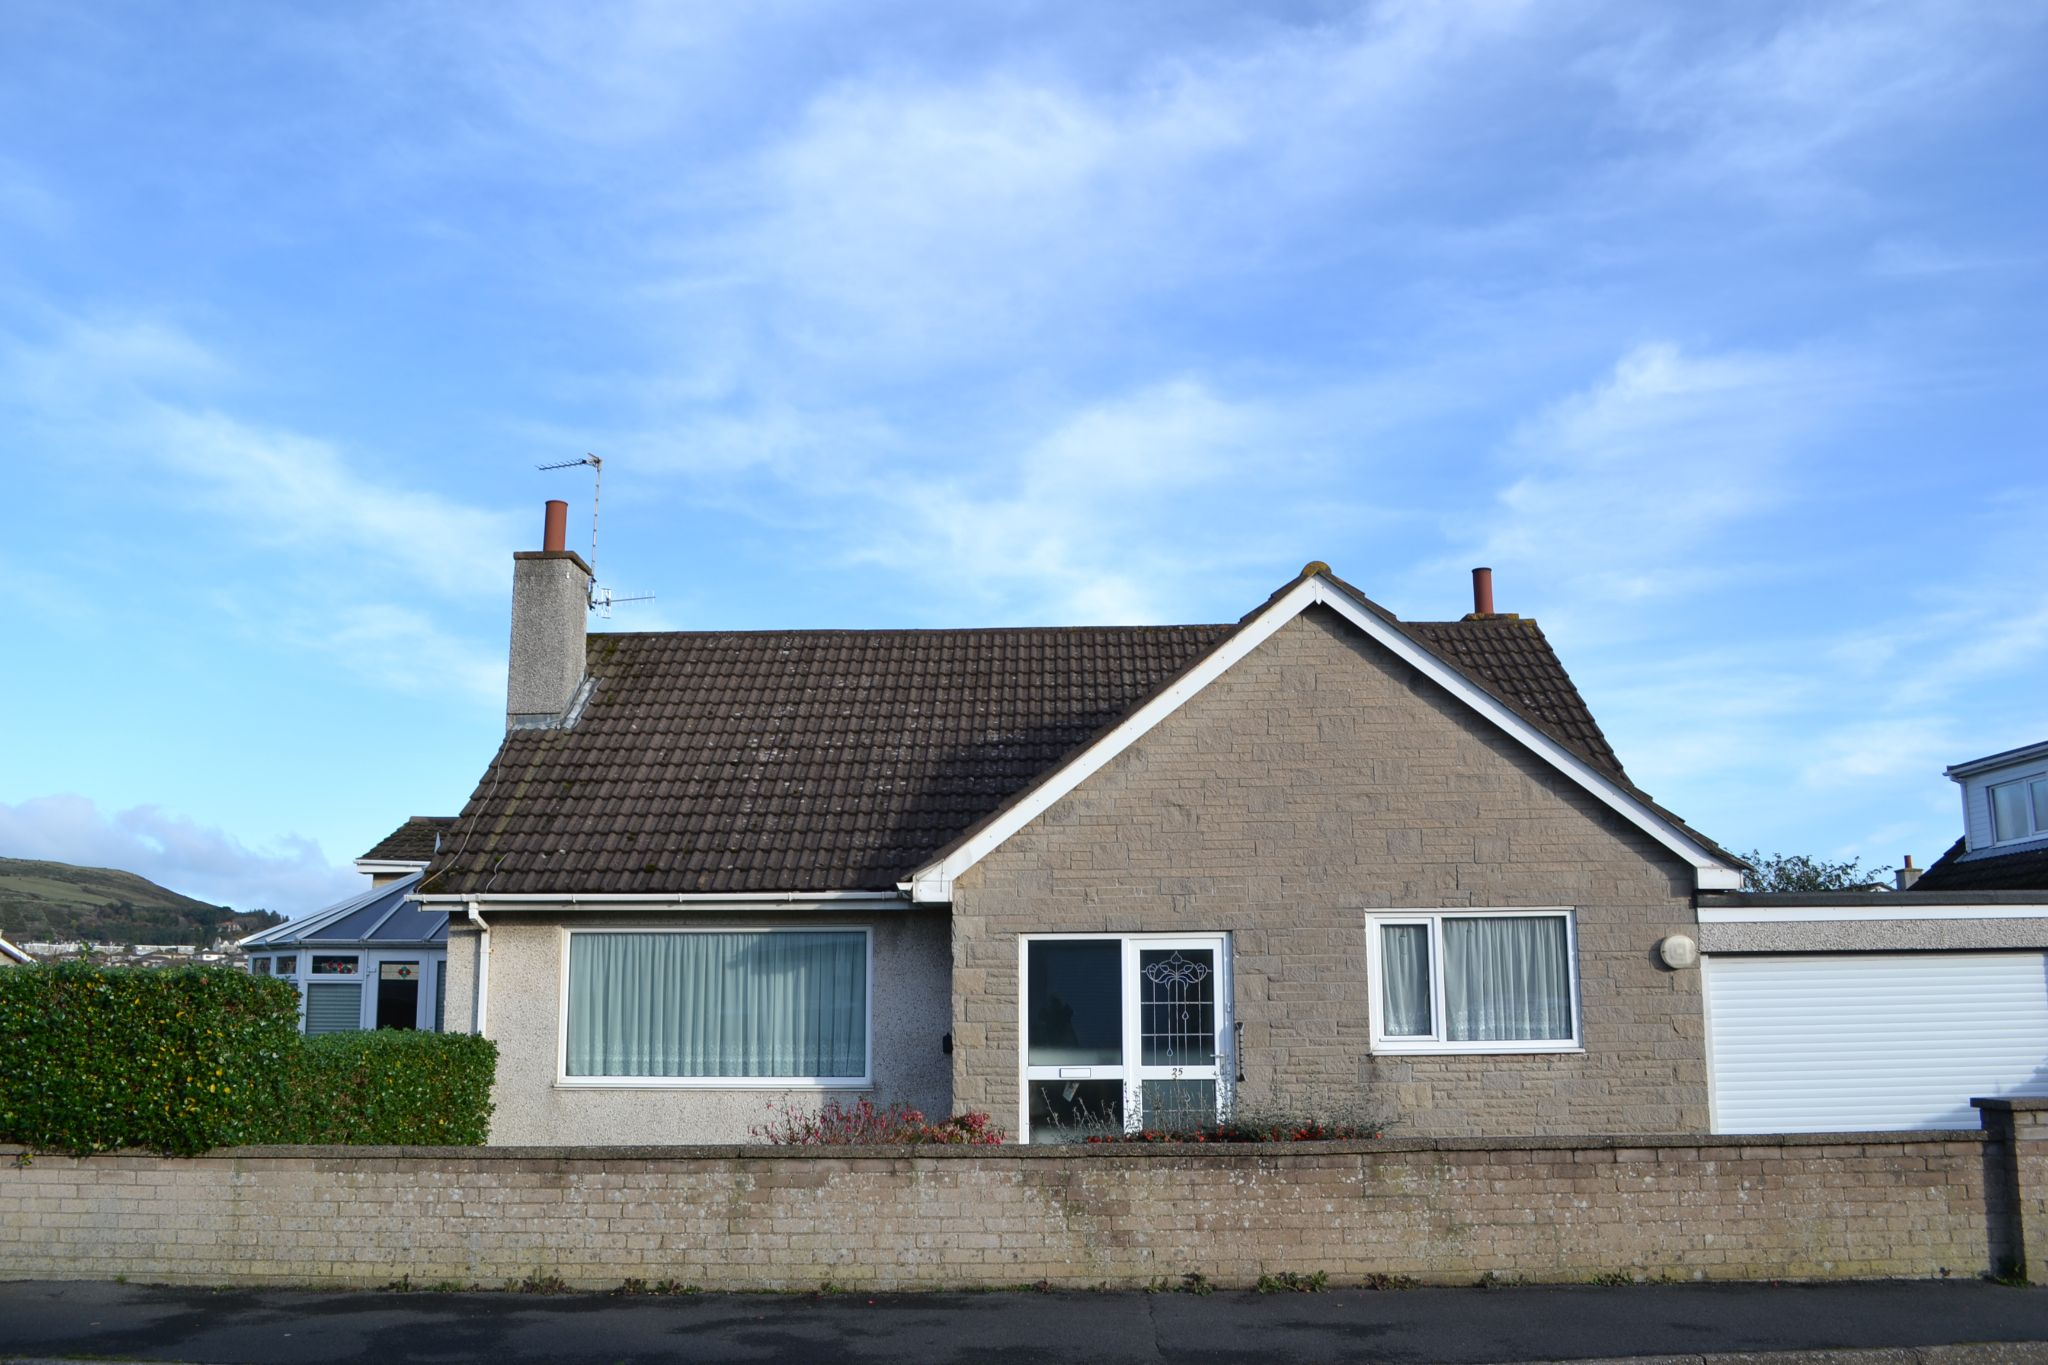 3 bedroom detached bungalow For Sale in Port Erin - Photograph 2